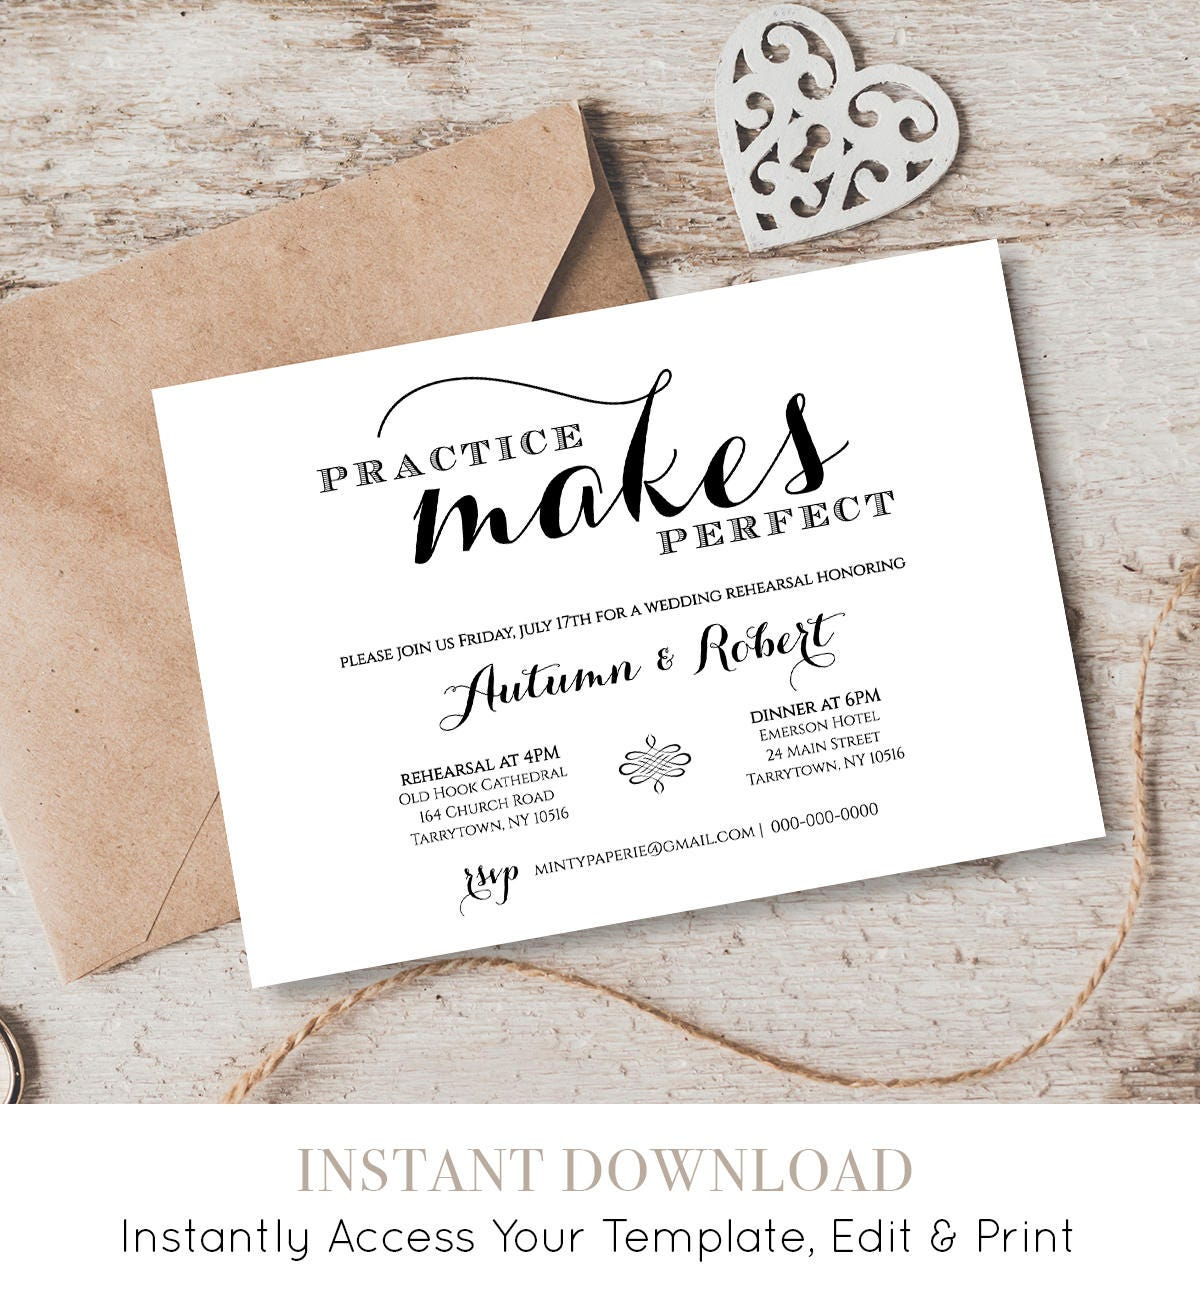 Wedding Rehearsal Dinner Invitation Template, INSTANT DOWNLOAD ...